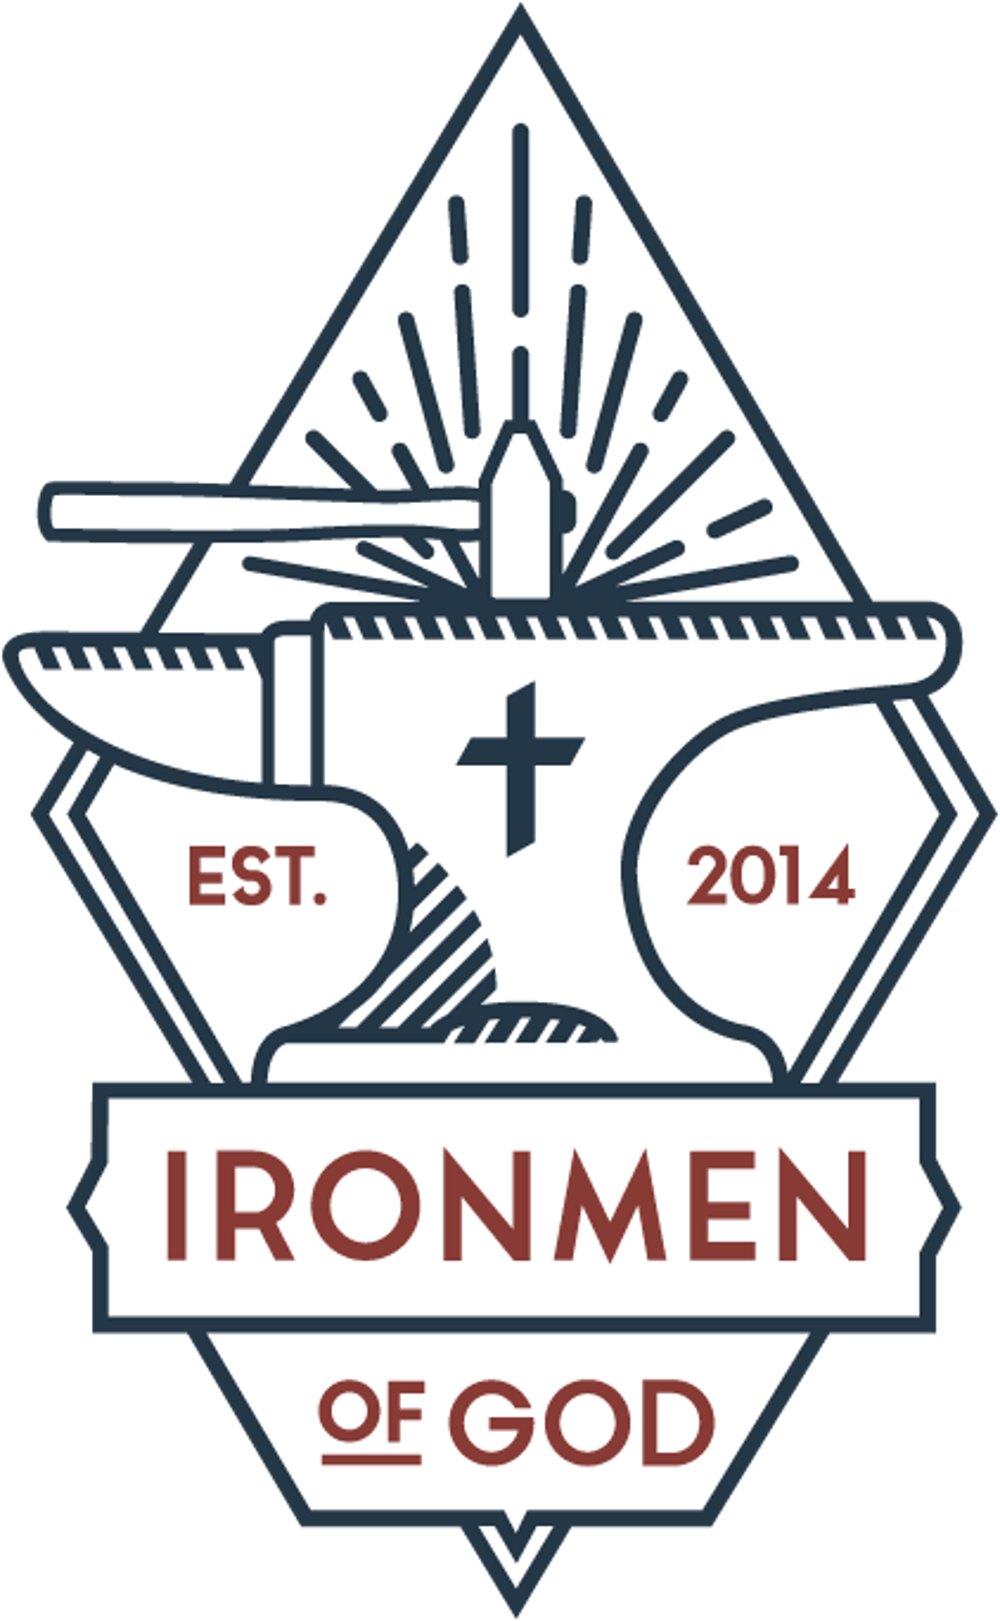 Ironmen of God